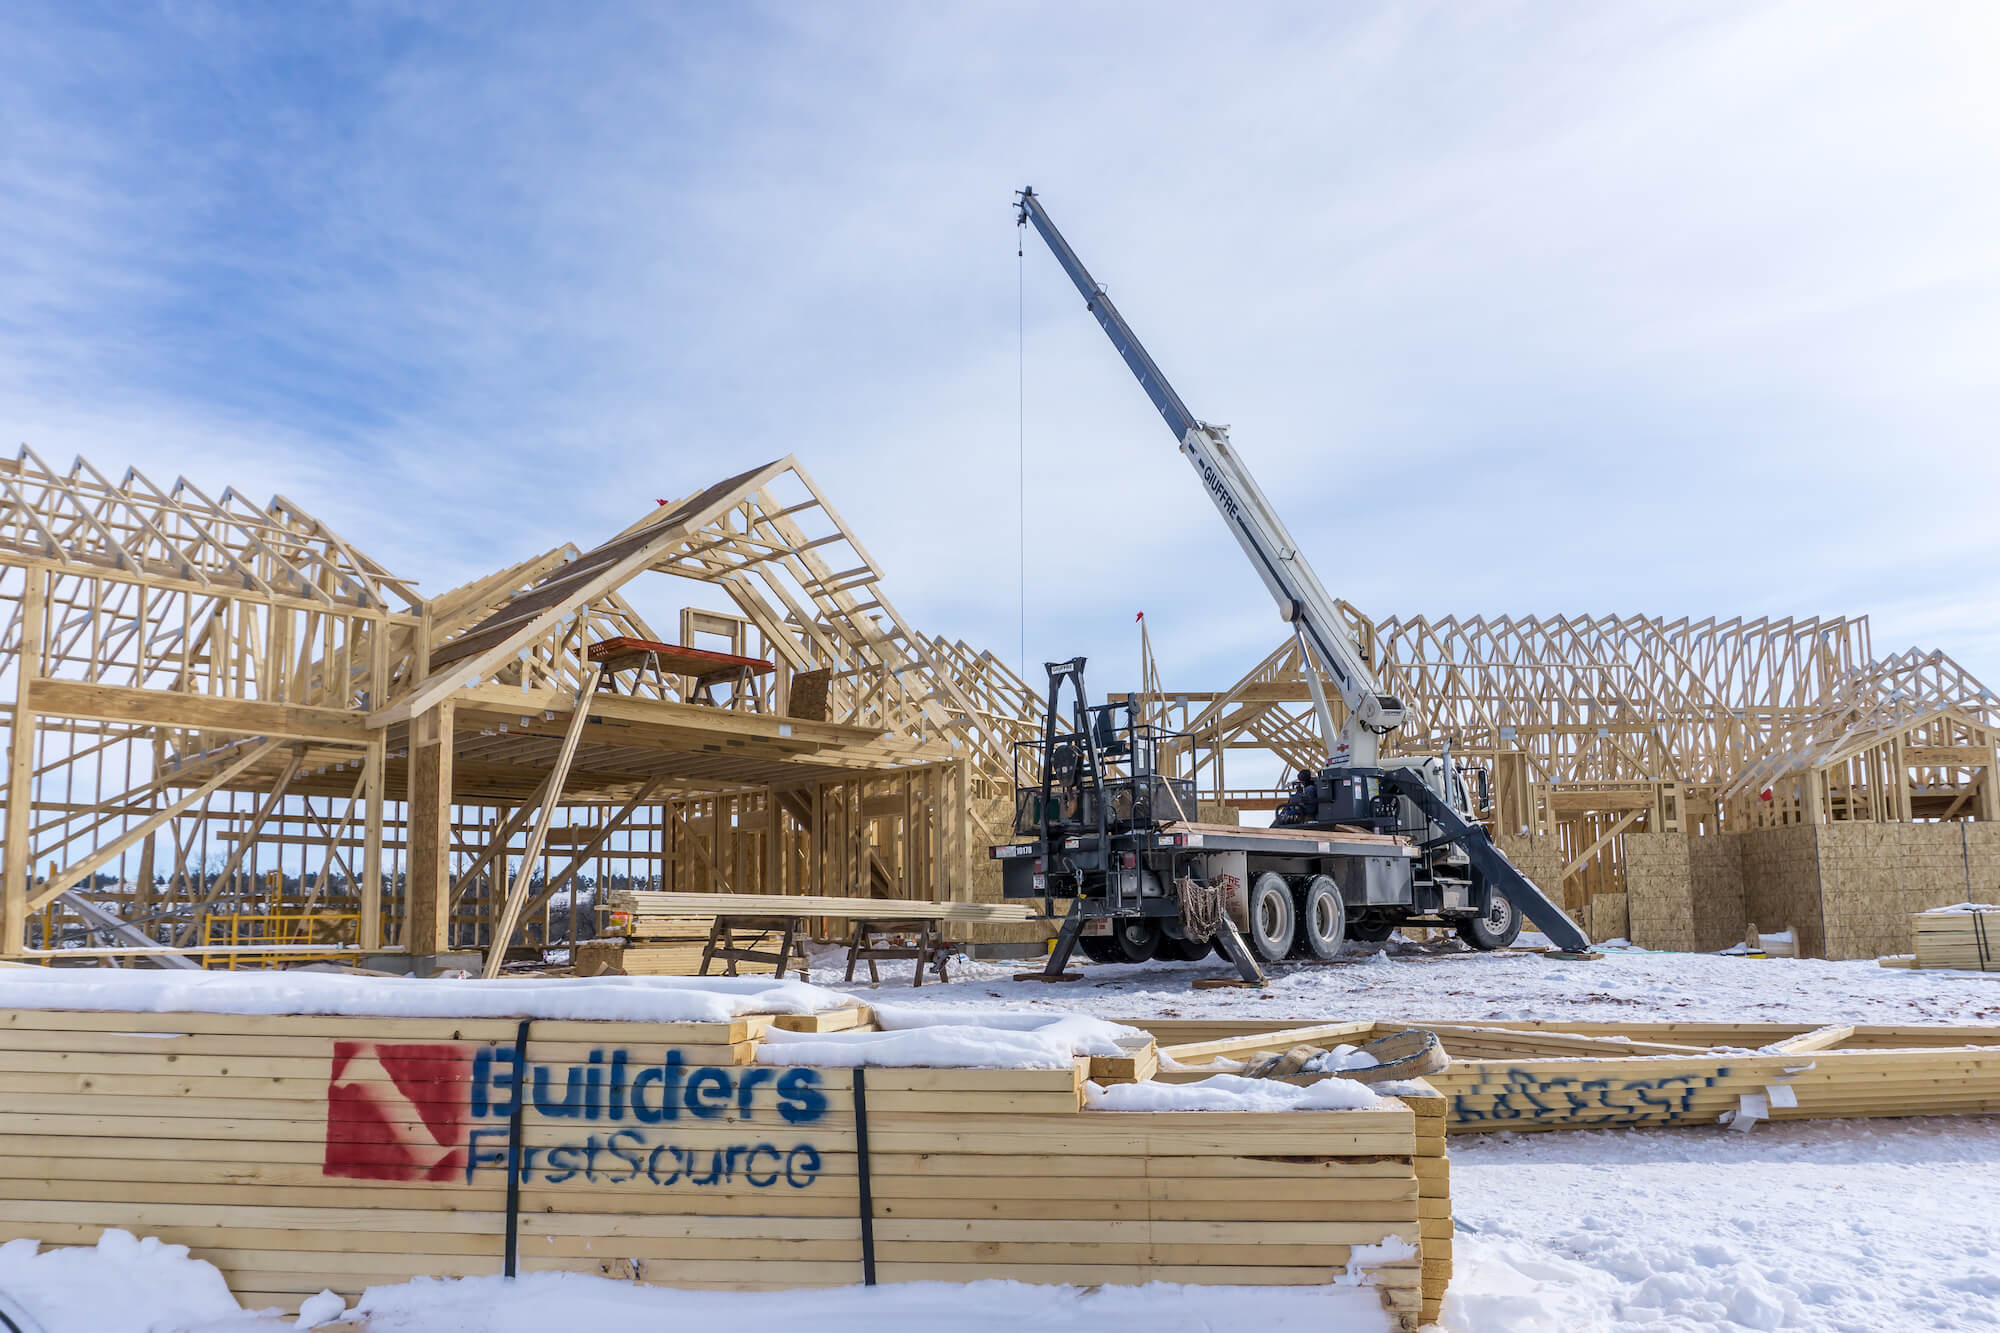 2019-2-21 Schad Construction Spearfish Home Progress Photos Compressed  41.jpg